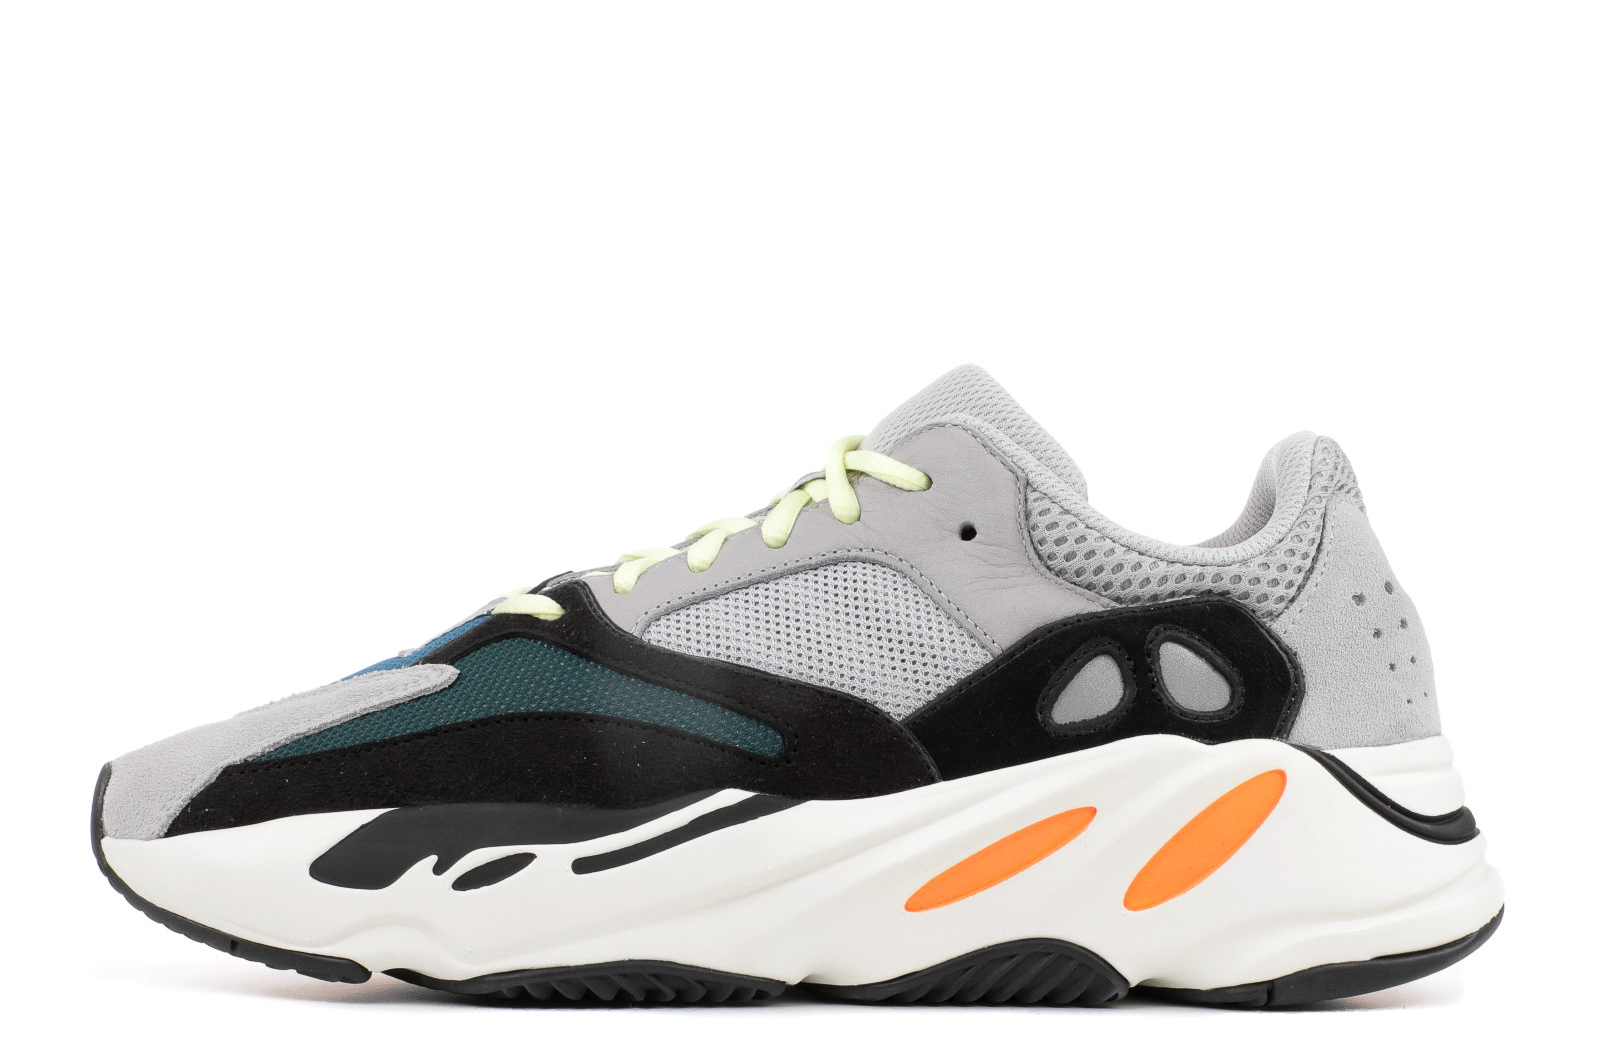 "YEEZY BOOST 700 OG ""WAVE RUNNER"" B75571"